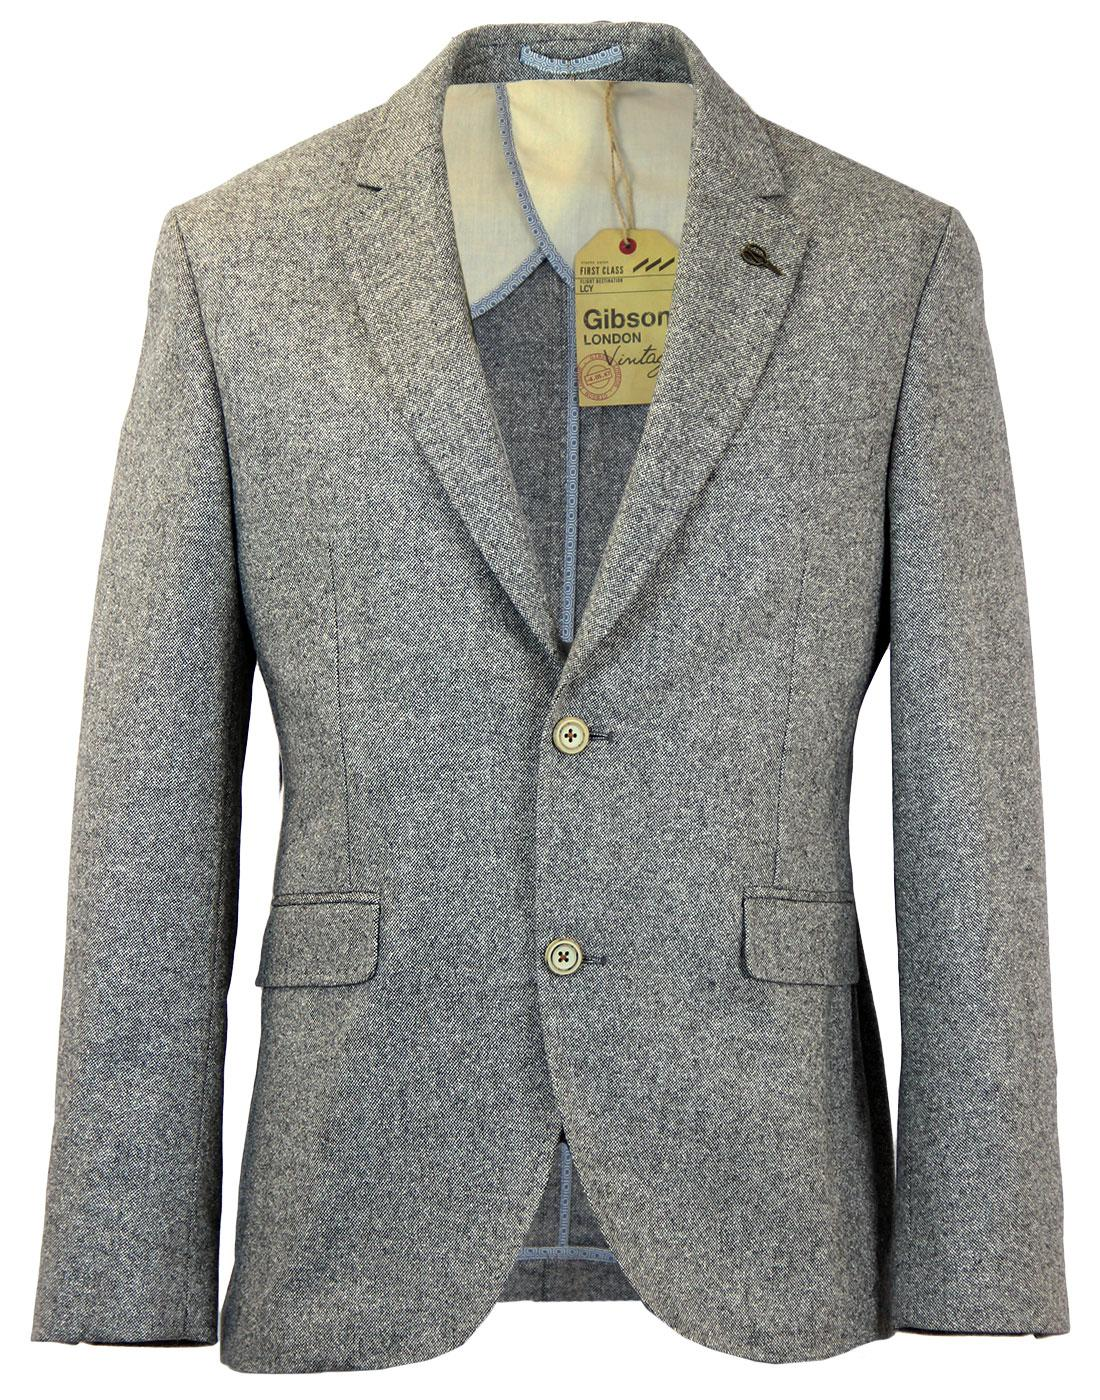 GIBSON LONDON 2 Button Donegal Suit Jacket GREY